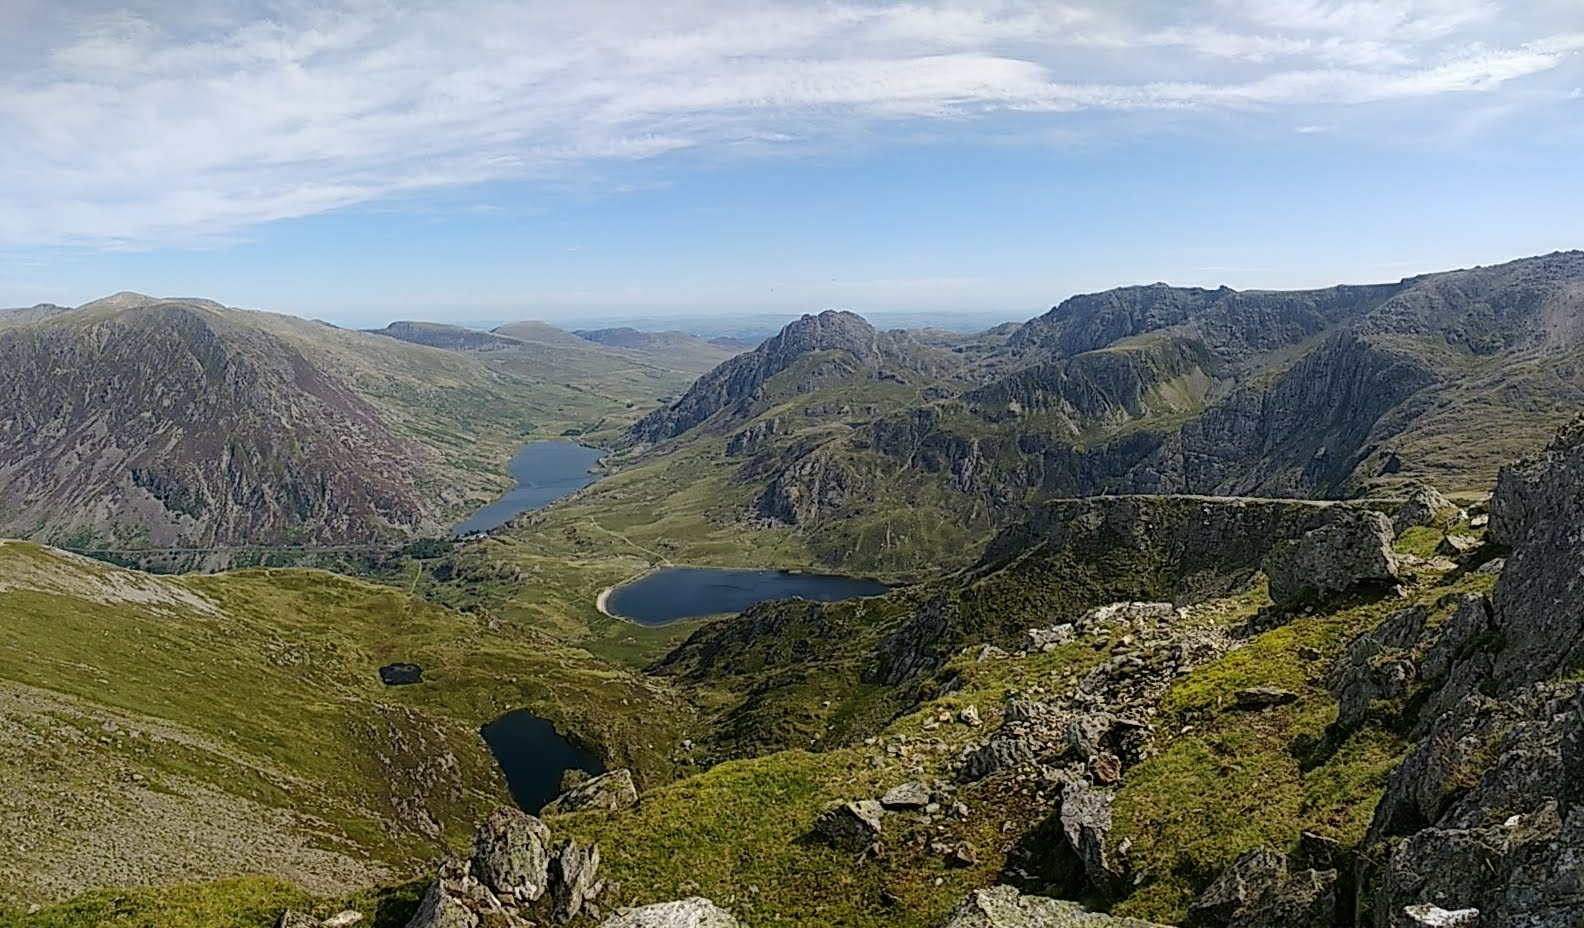 The Glyderau and Tryfan on the right and the Carneddau on the left